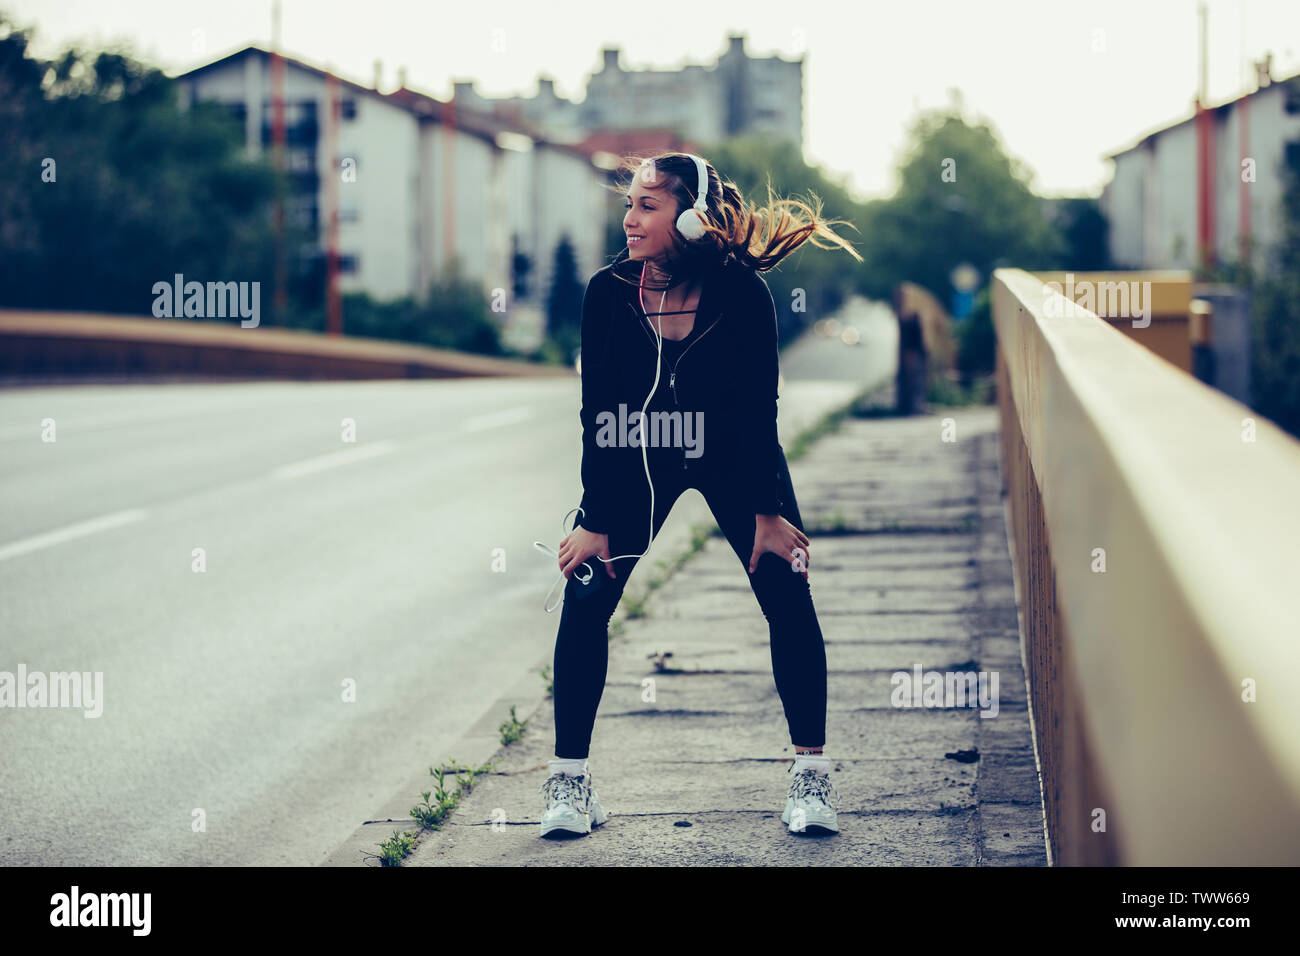 Young woman in black sports outfit resting while listening to music after running on the bridge in the city. - Stock Image